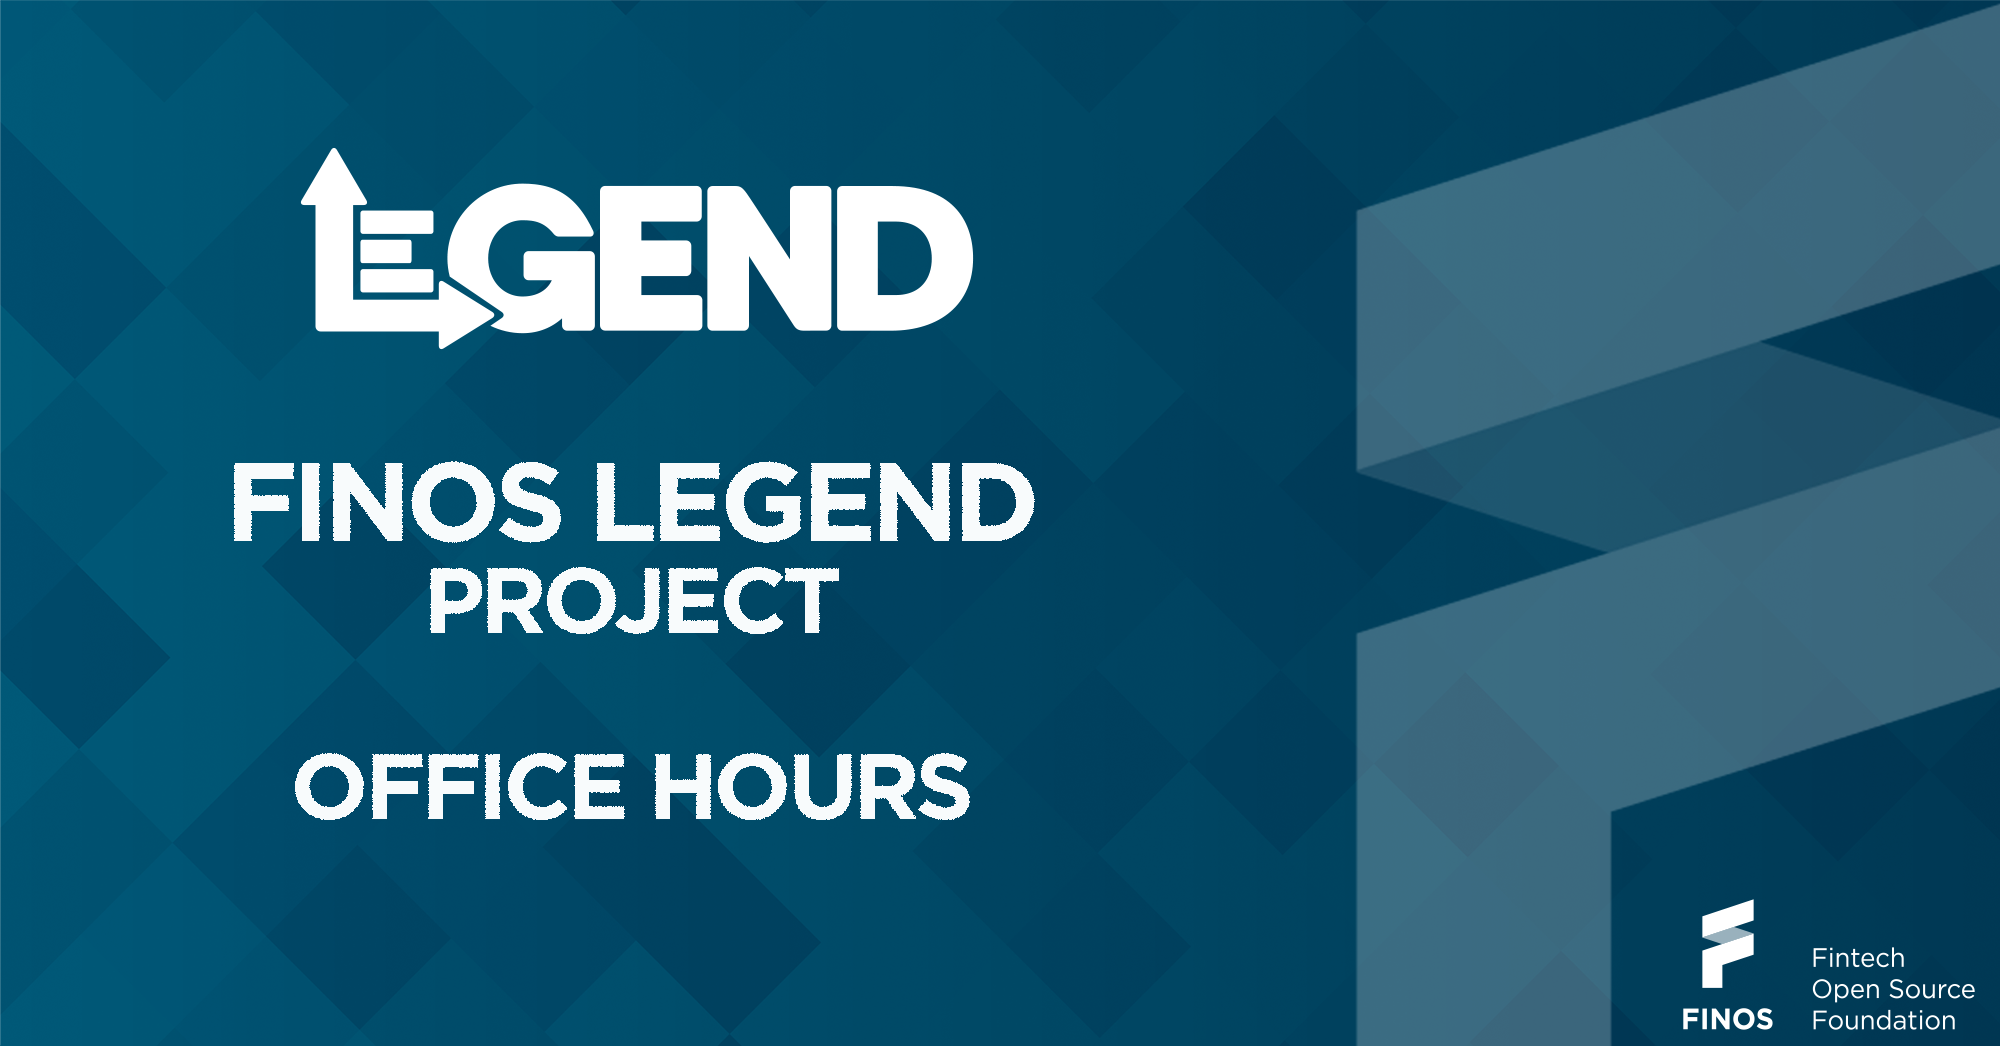 FINOS-project-legend-office-hours